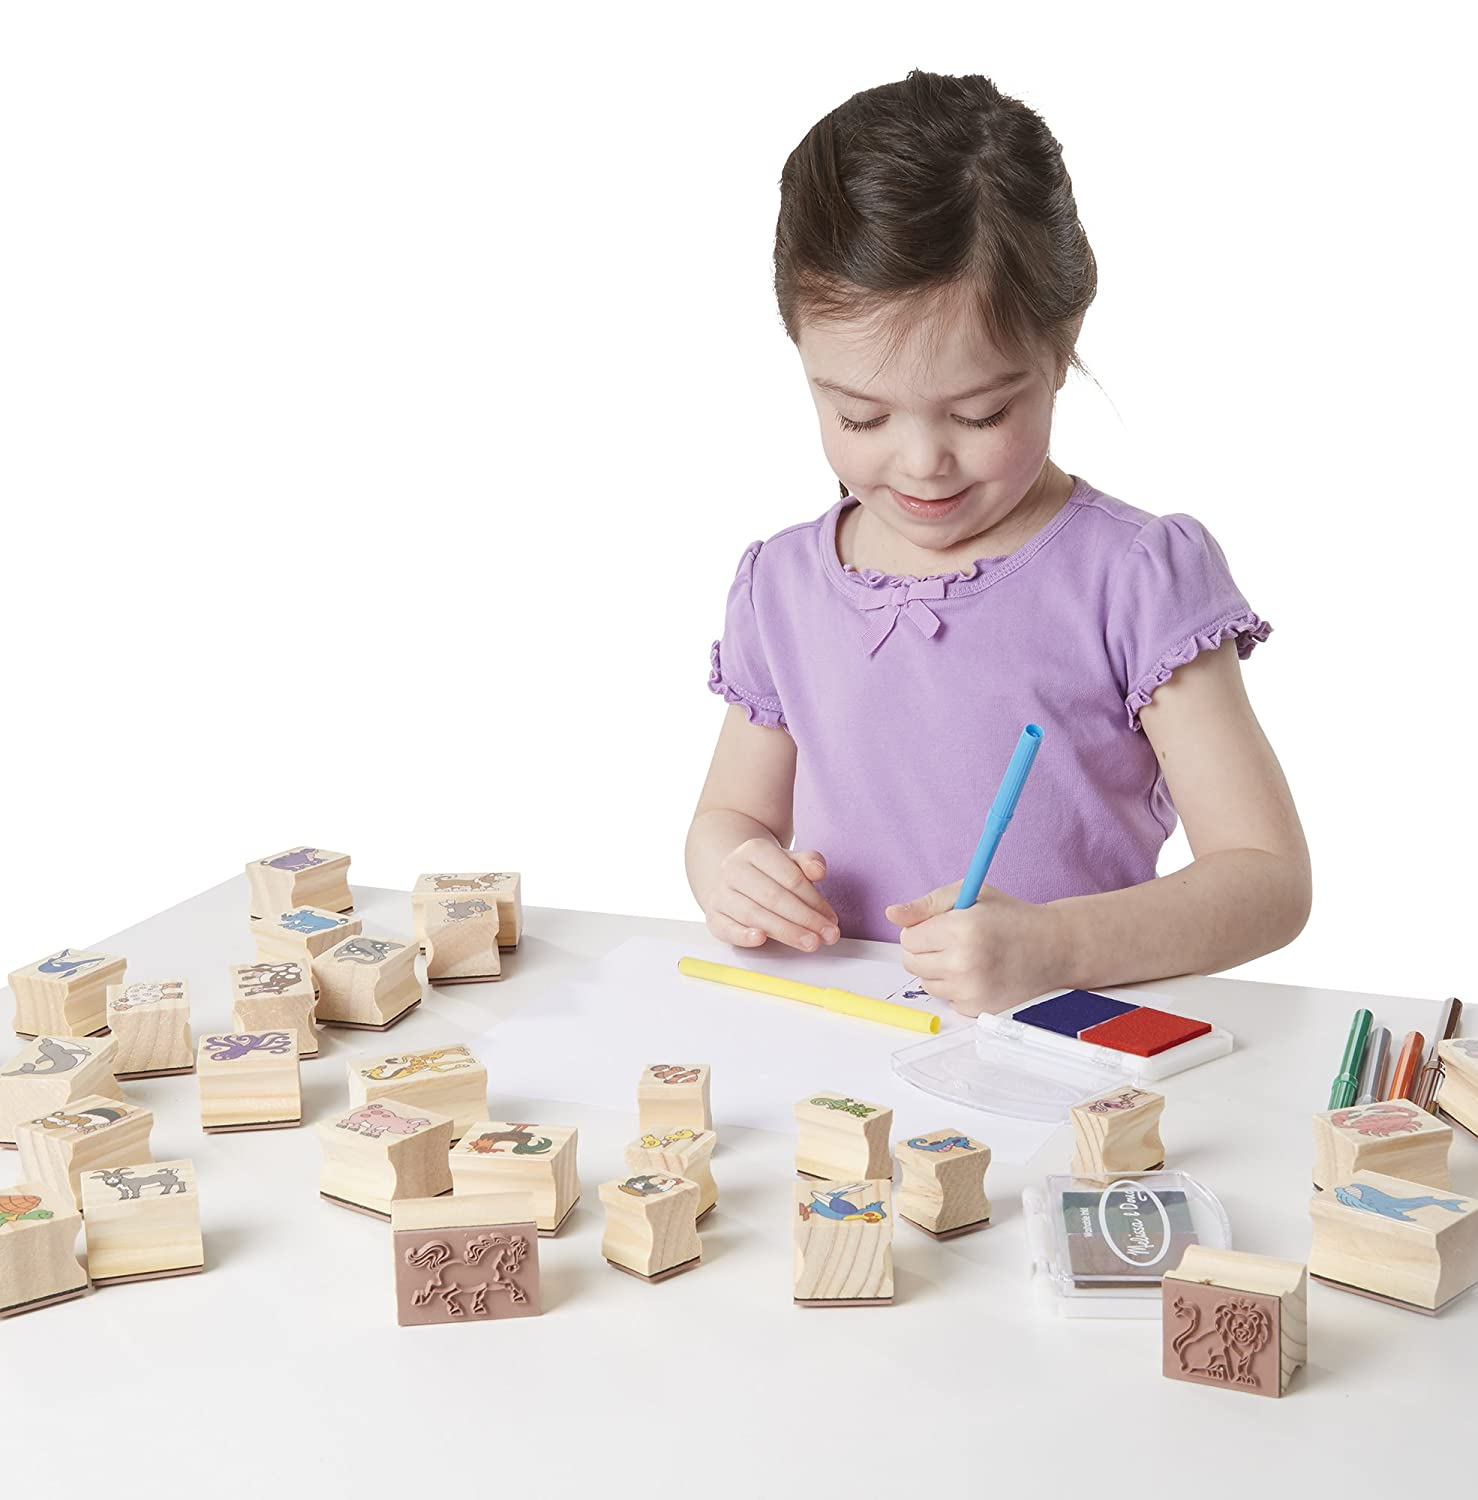 4 Sticker Sheets 5 Colored Pencils Melissa /& Doug Wooden Classroom Stamp Set With 10 Stamps and 2-Colored Stamp Pad 2400